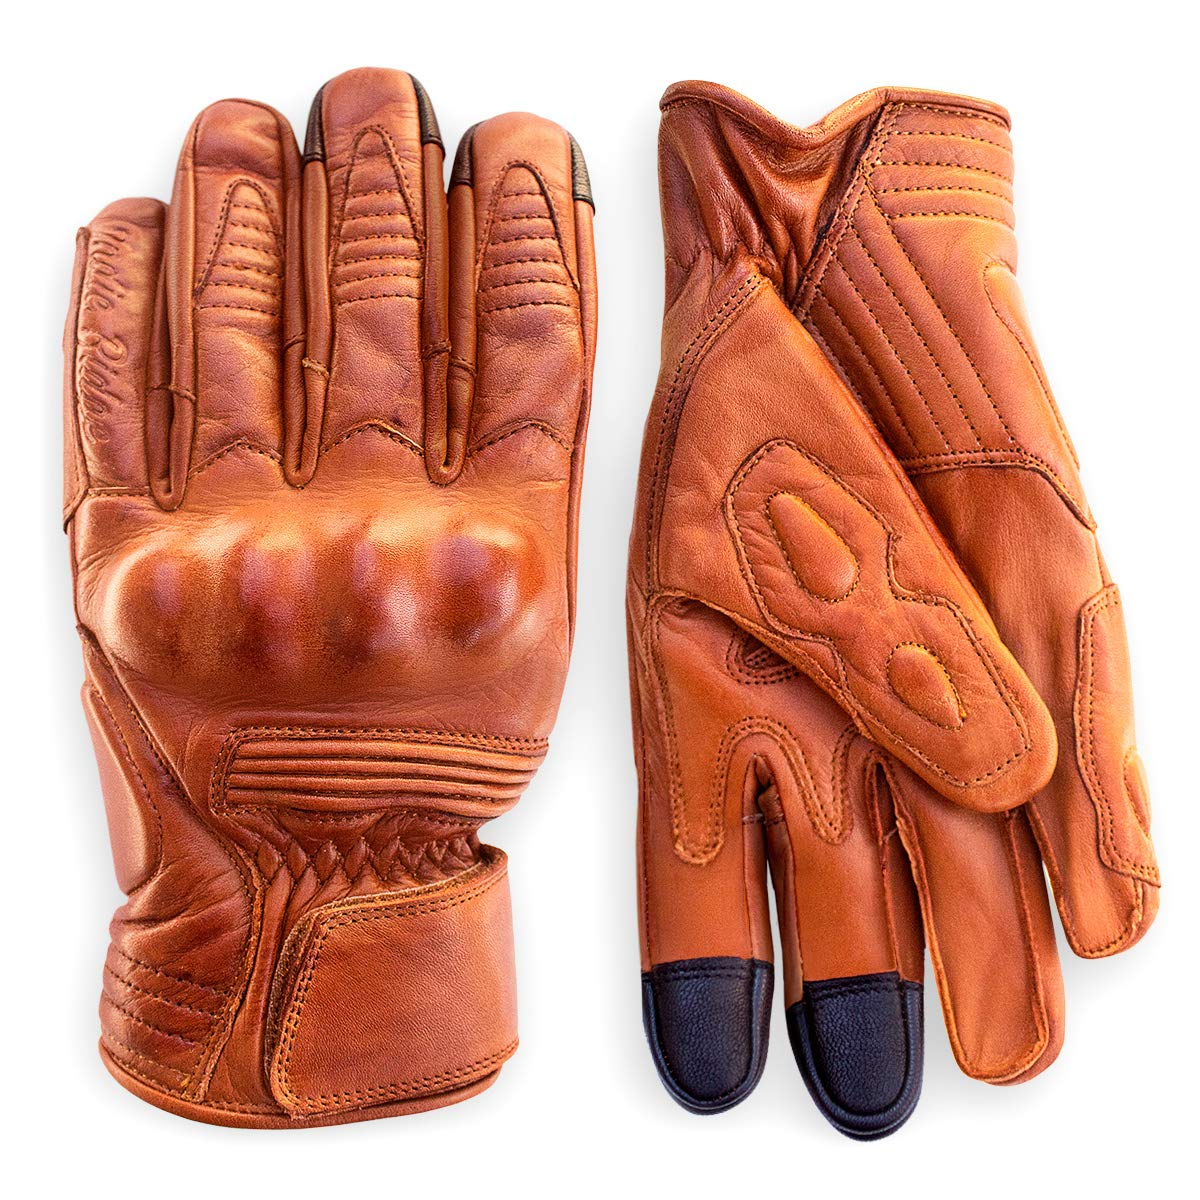 Premium Leather Motorcycle Gloves (Camel) Cool, Comfortable Riding Protection, Cafe Racer, Half Gauntlet with Mobile Touchscreen (XX-Large)